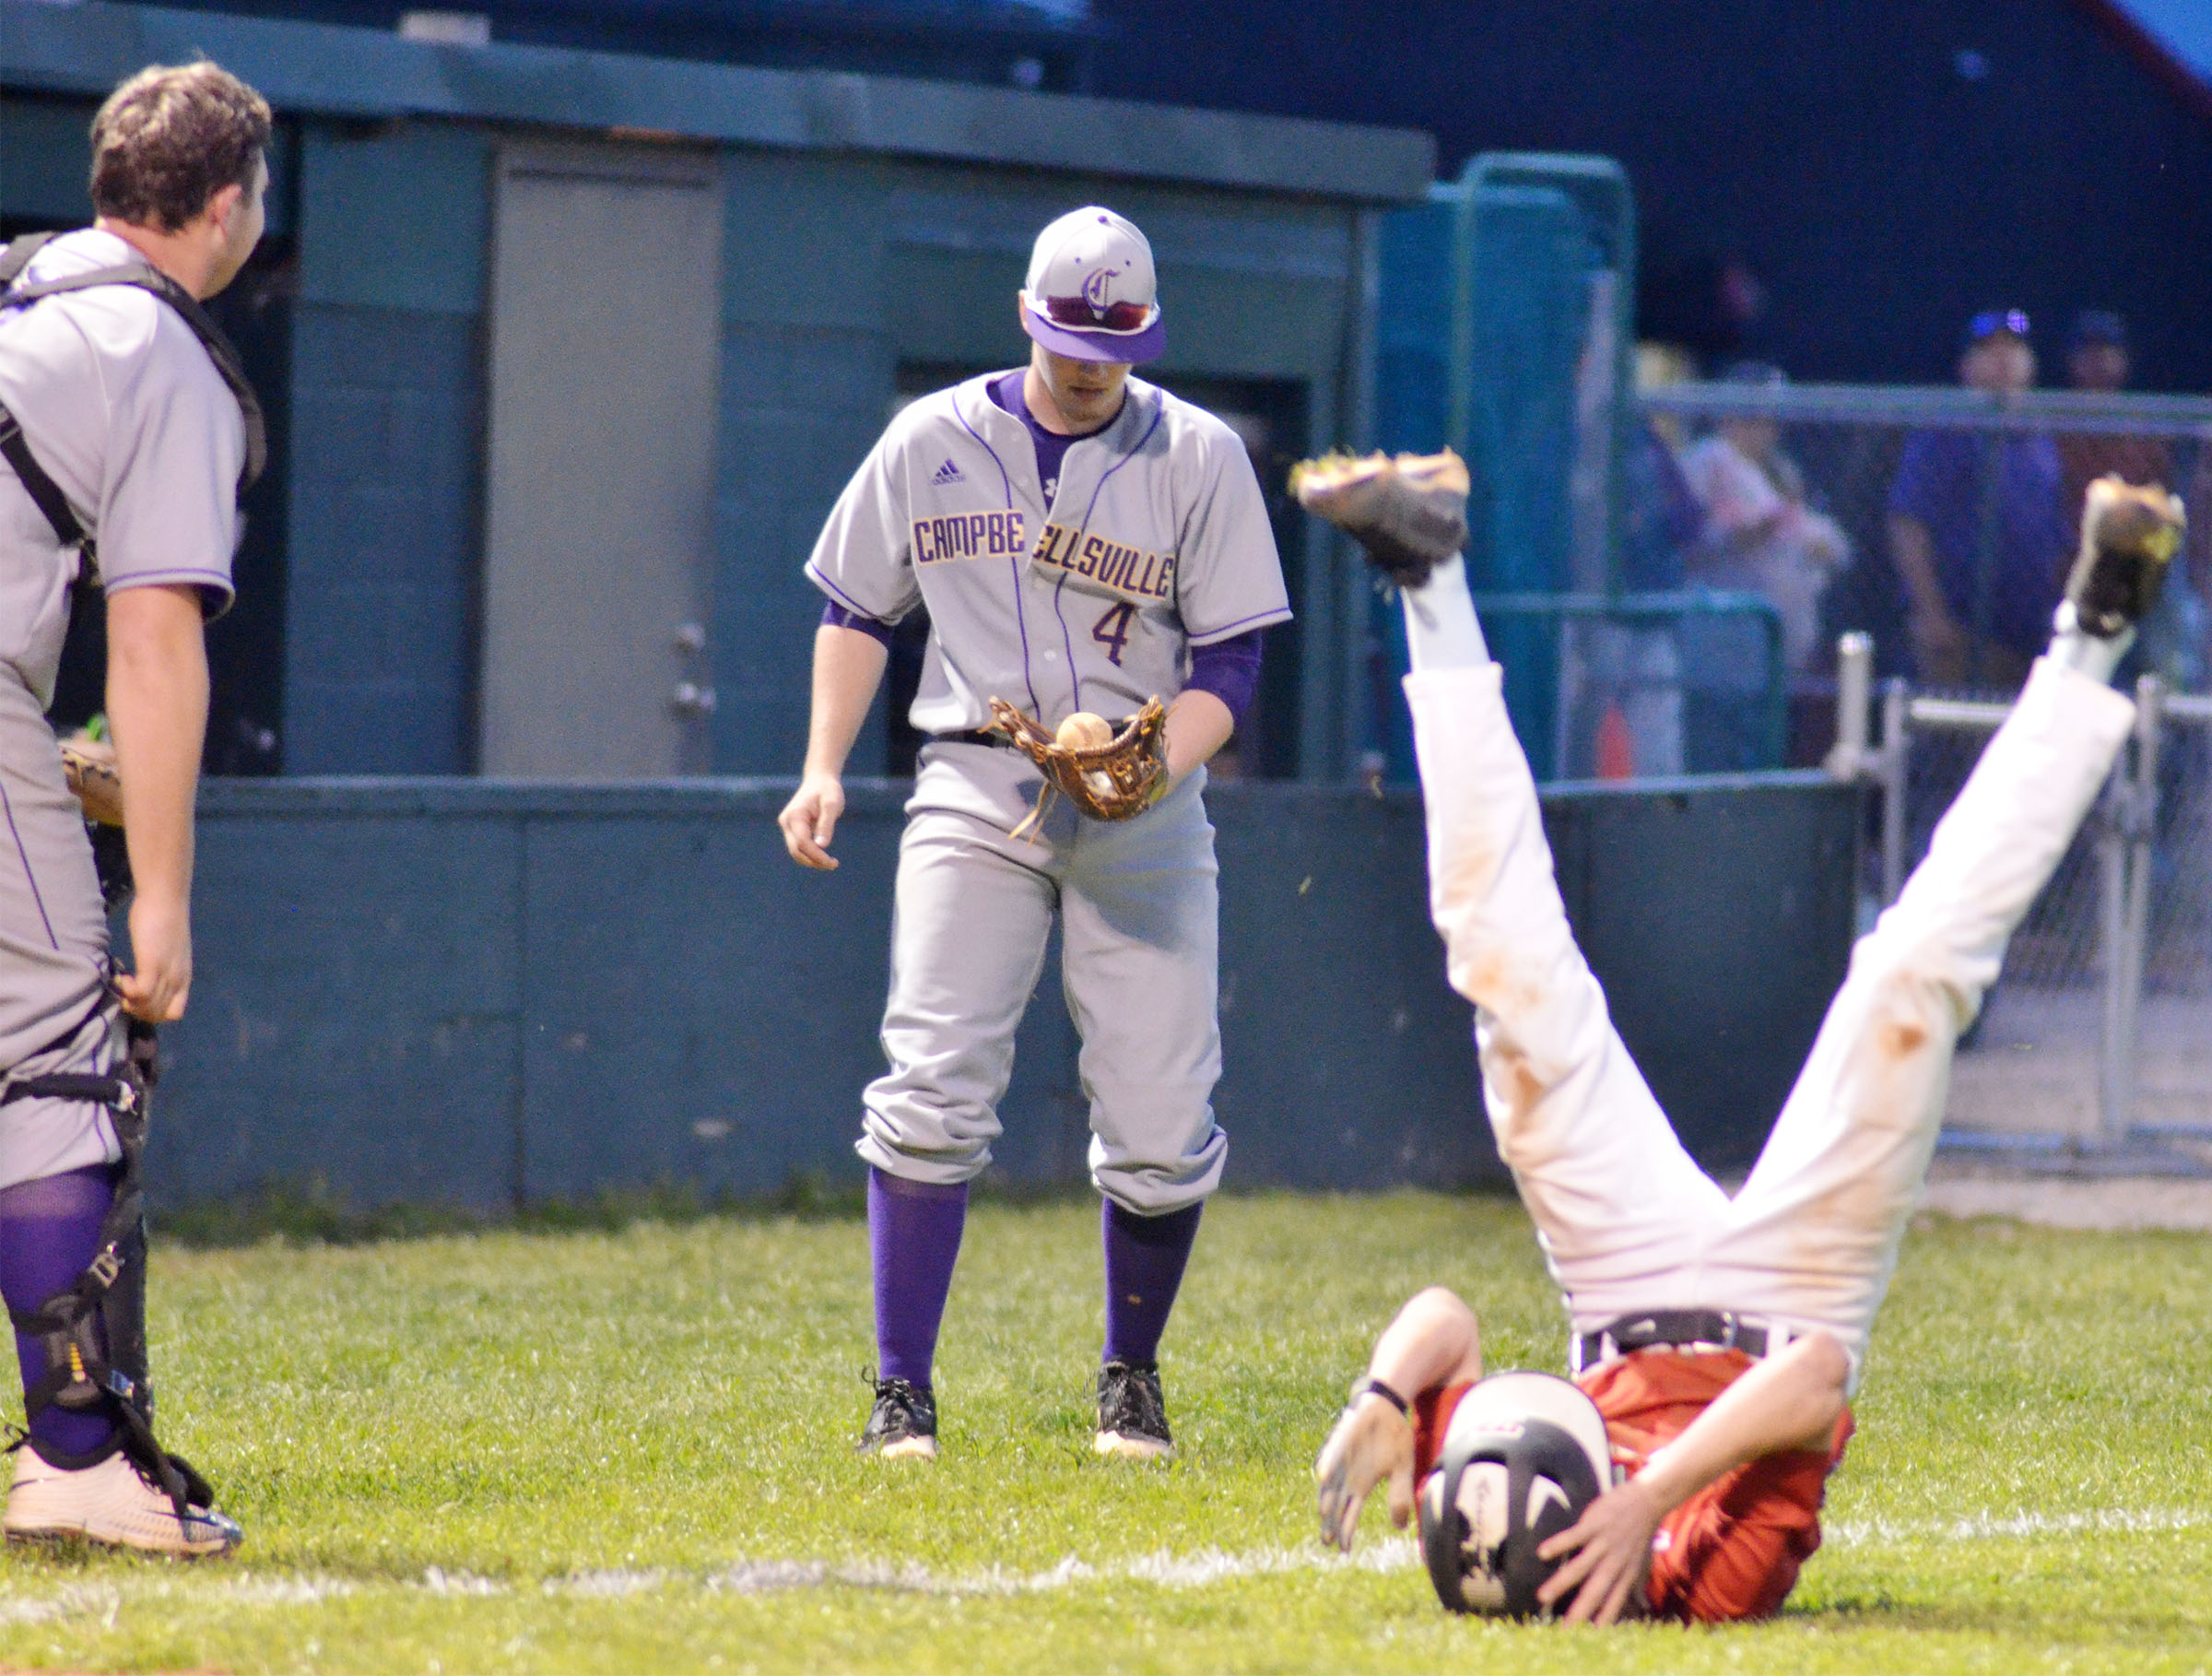 CHS junior Wyatt Houk gets an out as a Taylor County player takes a tumble.